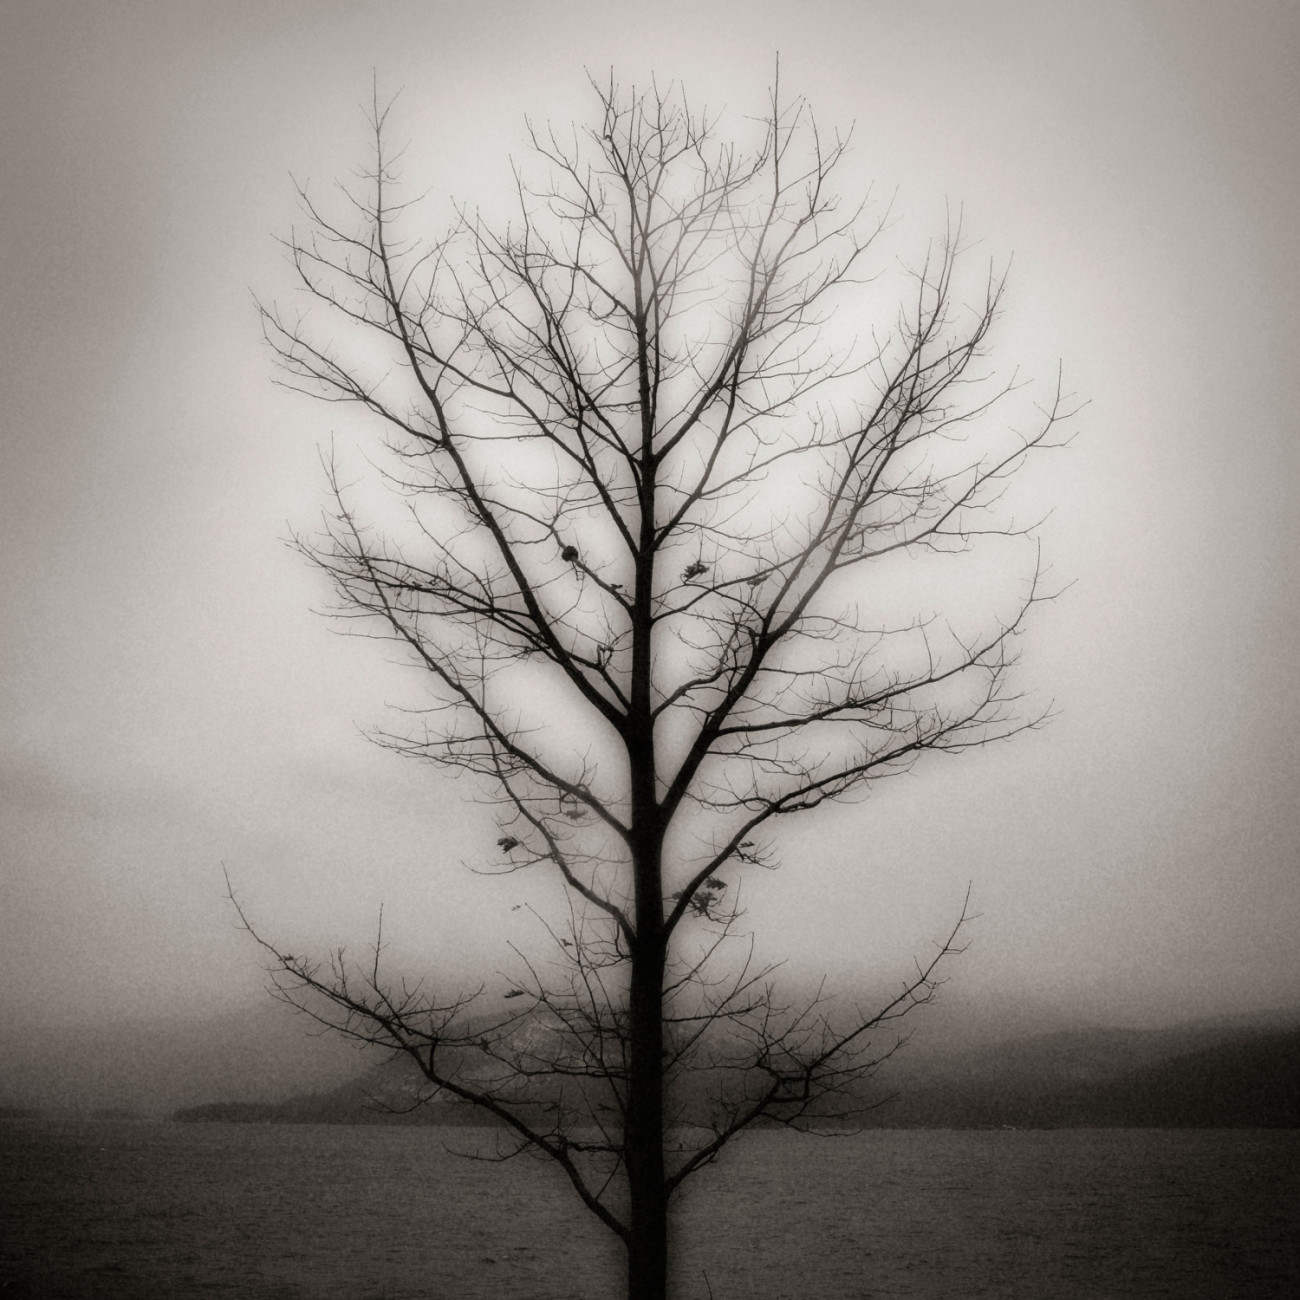 Tree in winter, Lake George, NY 2006